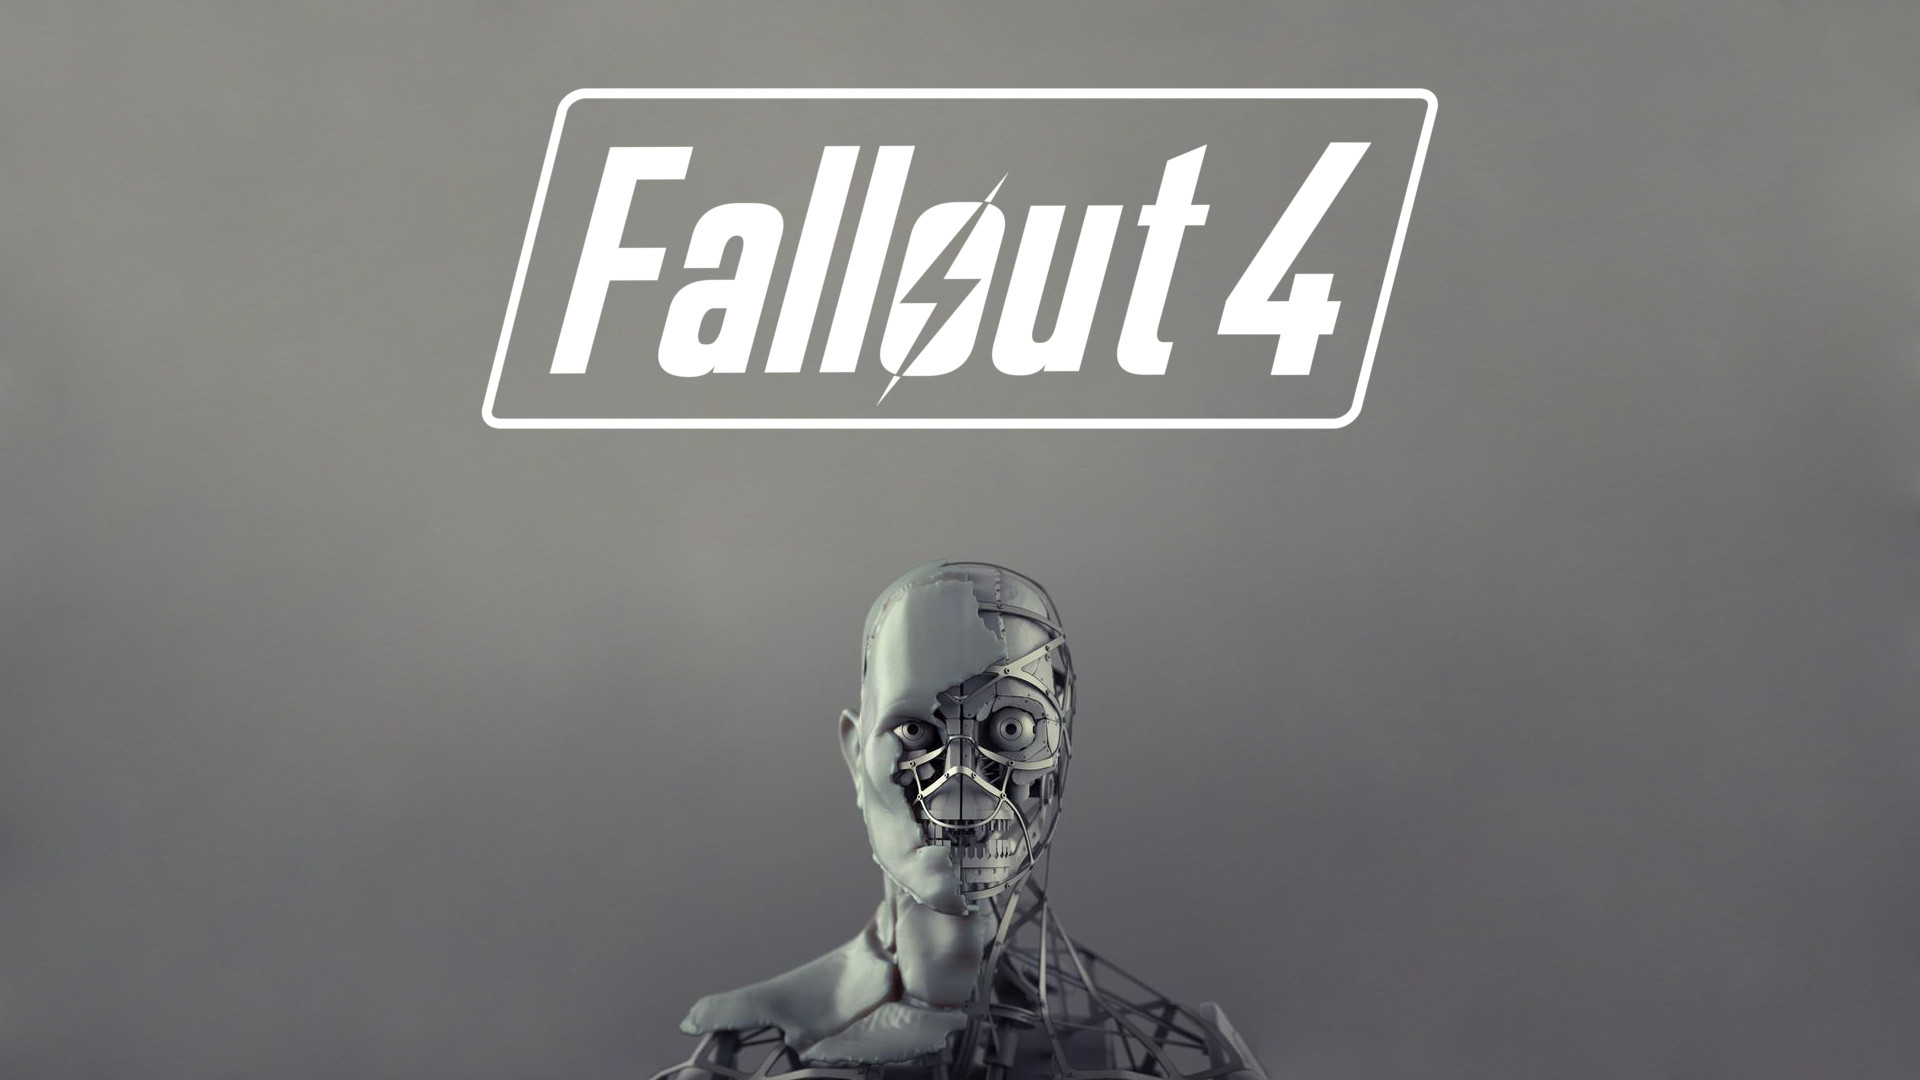 Fallout 4 Synth 2. Download here.